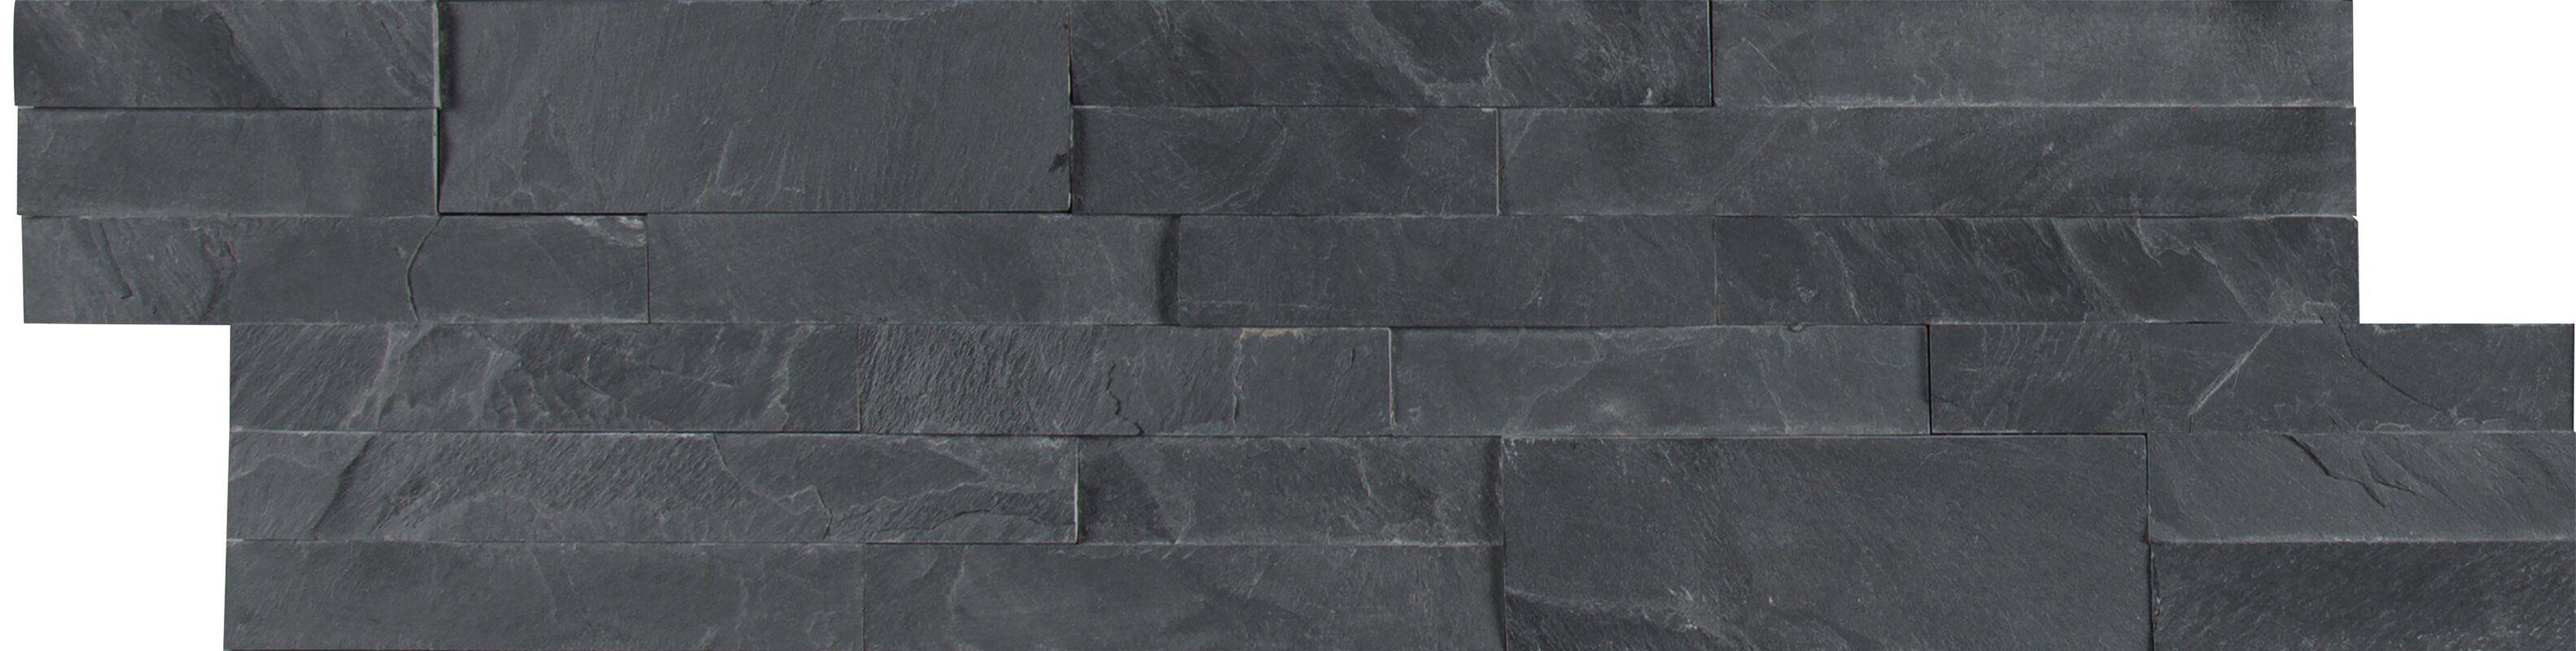 Midnight Ash Veneer L And Stick Natural Slate Subway Tile In Black